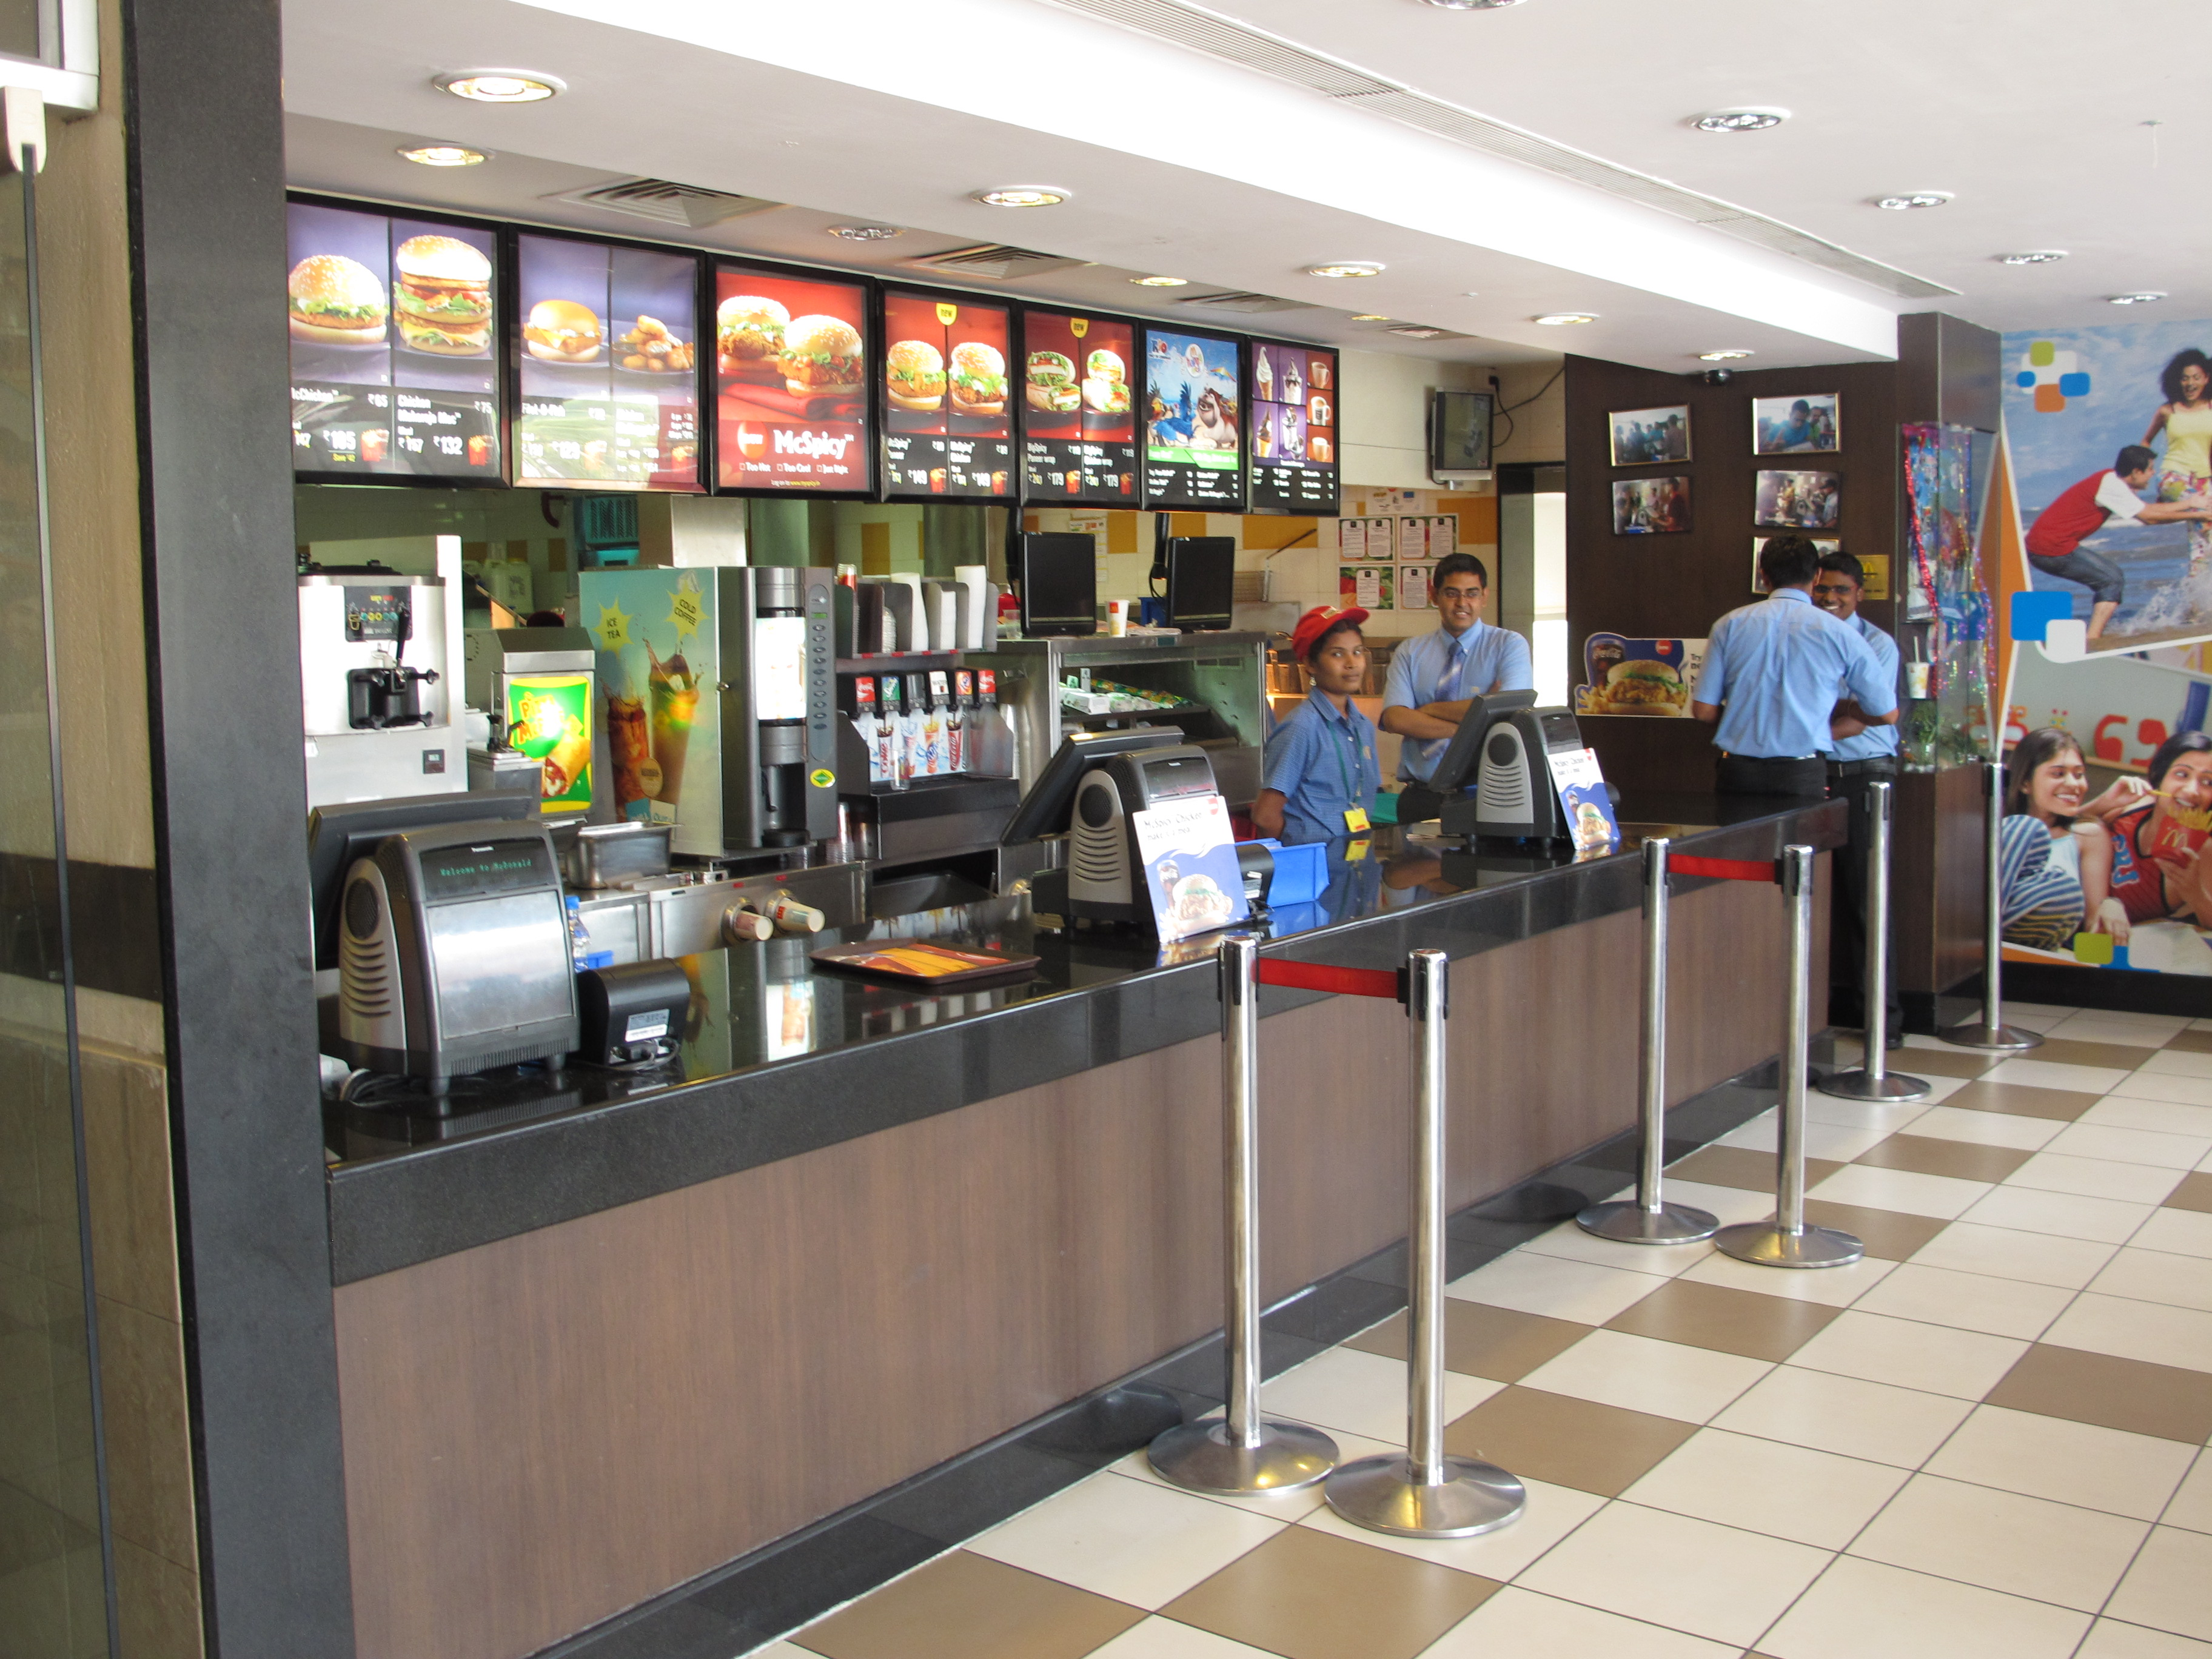 mcdonalds problems in india Mcdonald's is working aggressively to adopt a nearly 100% franchised model, however this incident reveals that issues with franchises can significantly impact the reputation of the company.